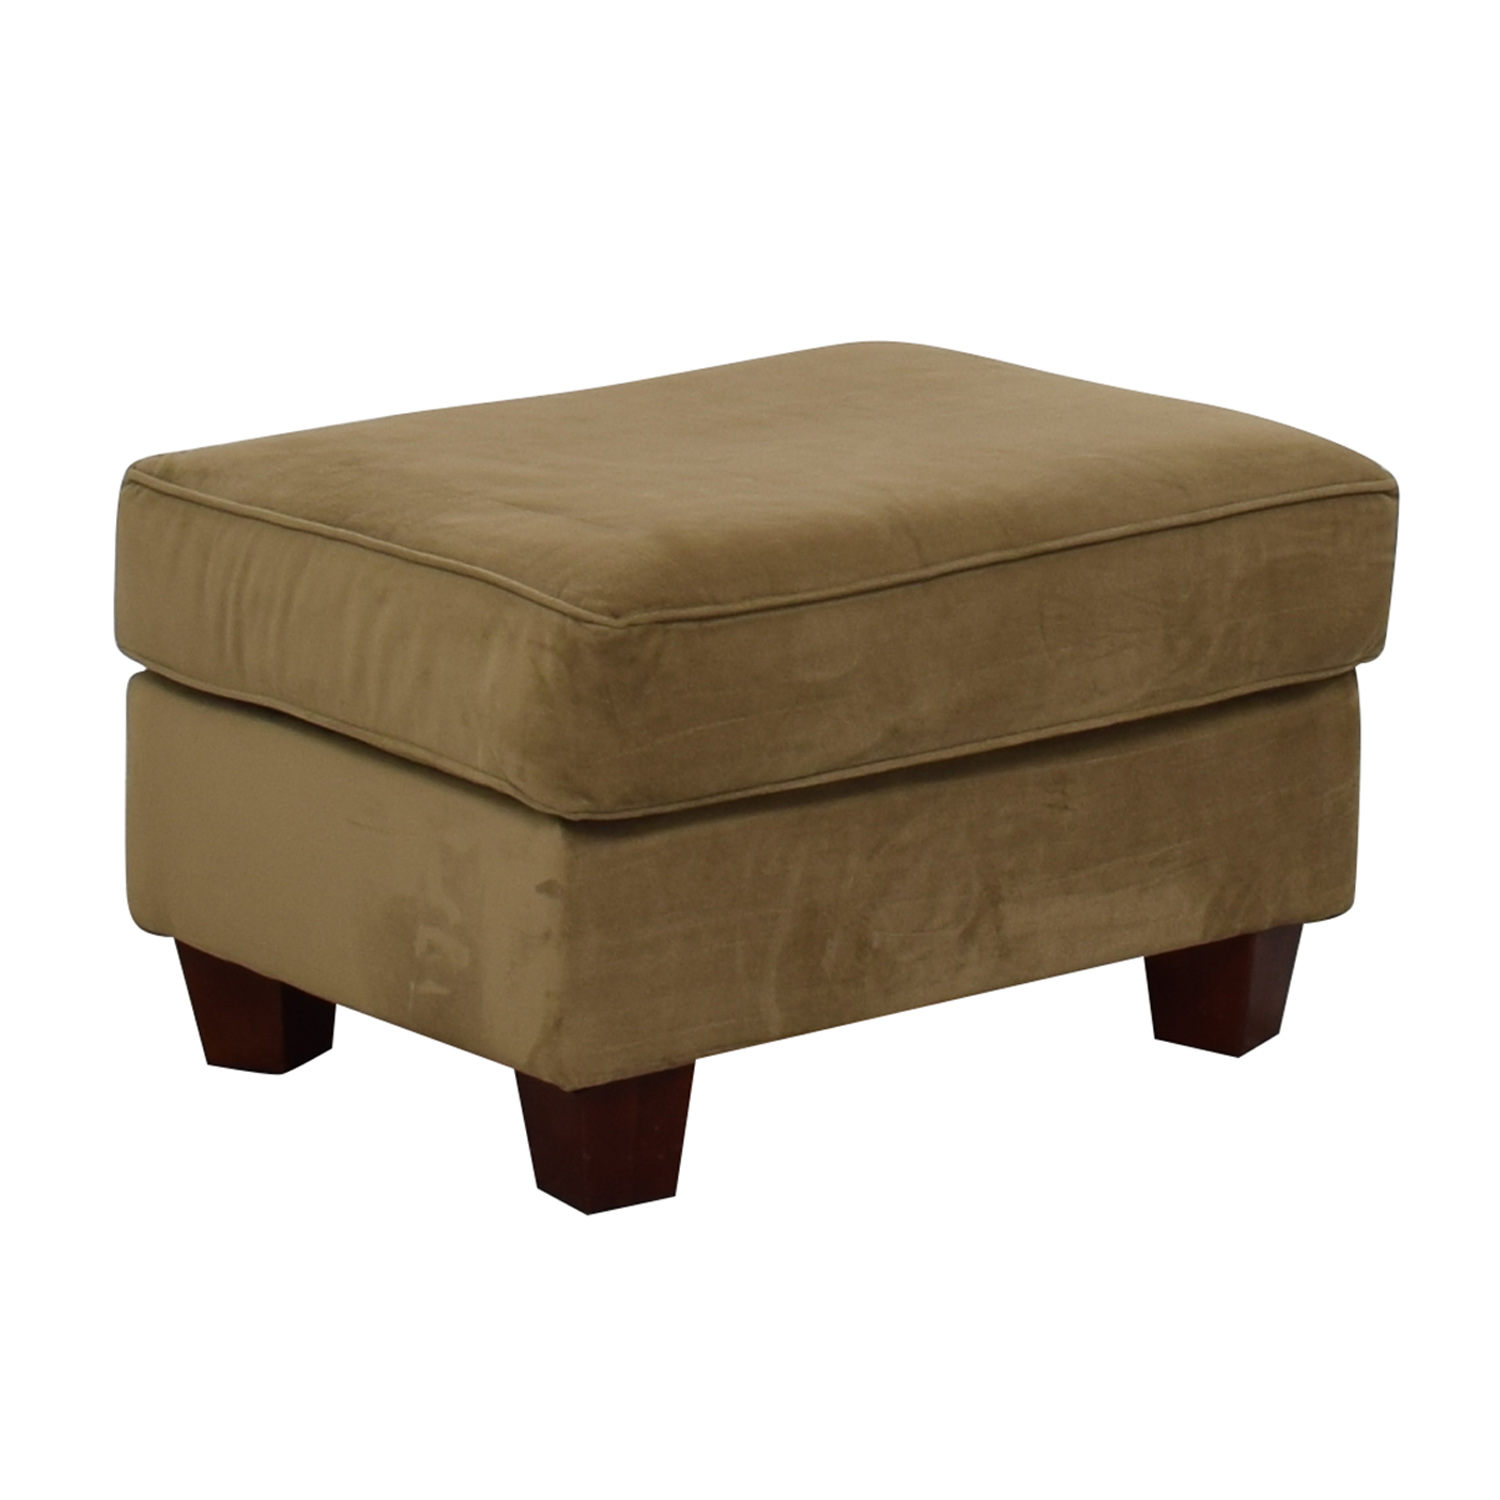 shop Bob's Discount Furniture Bella Tan Ottoman Bob's Discount Furniture Chairs